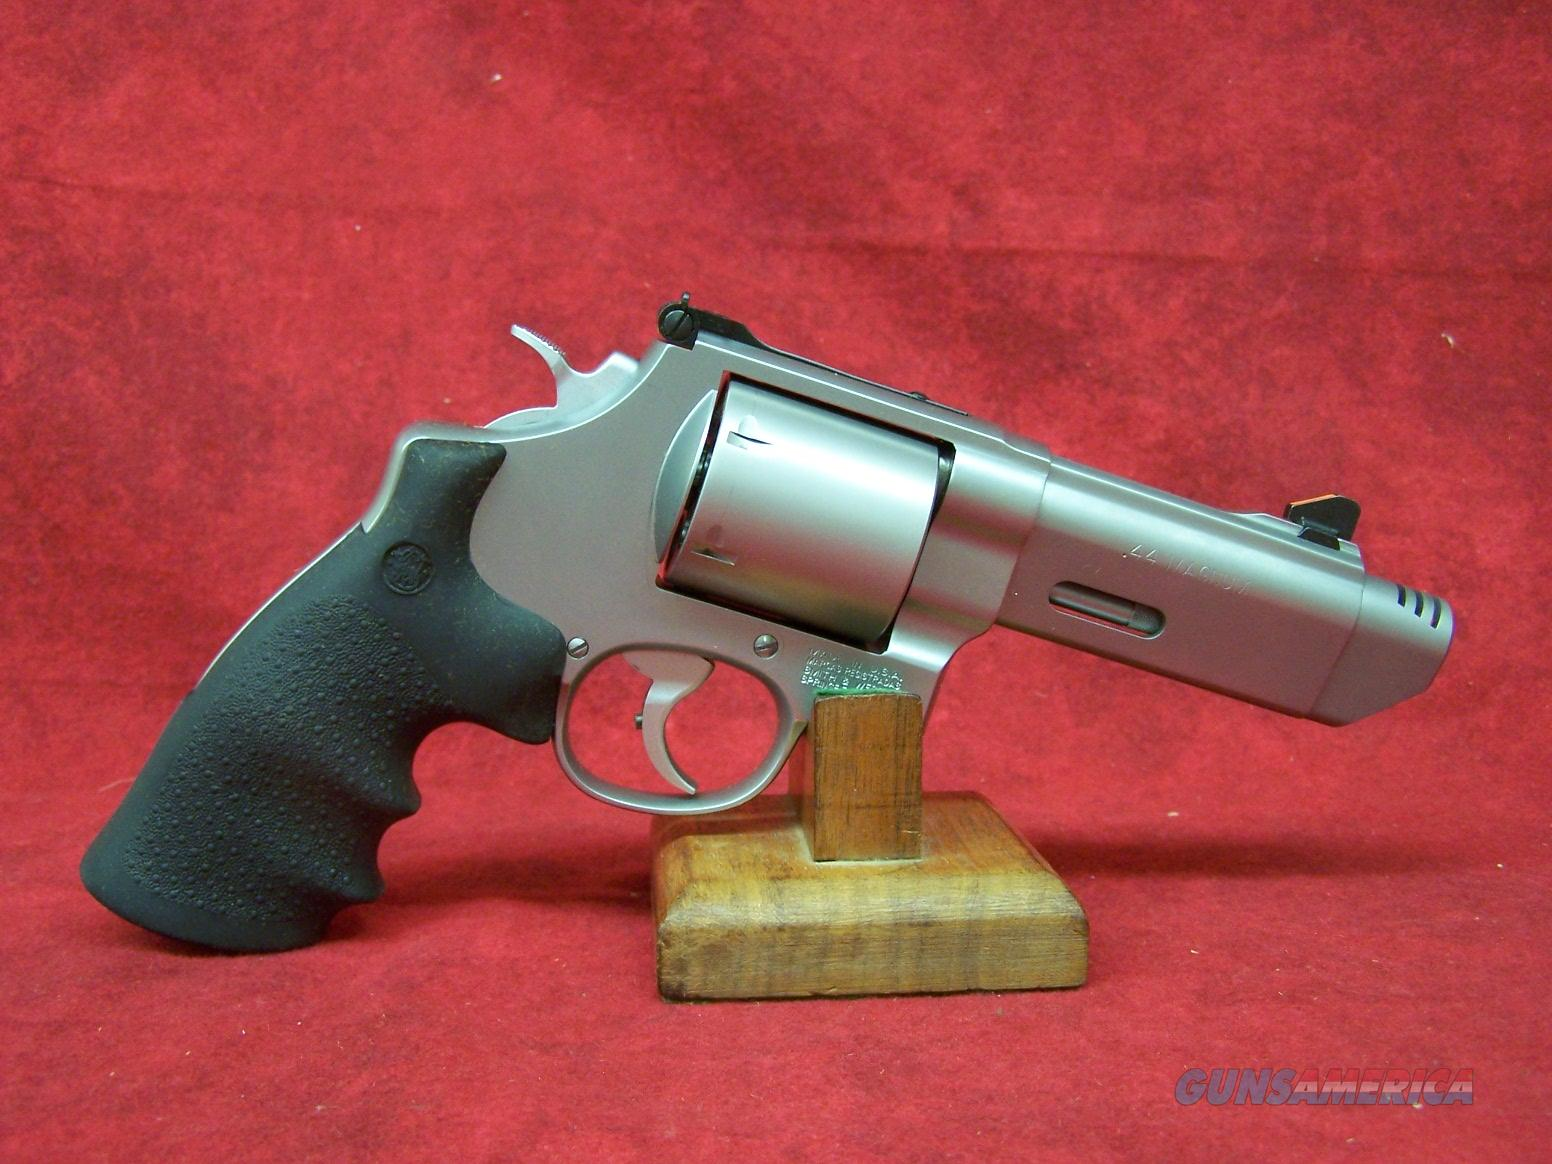 Smith & Wesson 629 44MAG 4.25'' SS V-COMP (170137)  Guns > Pistols > Smith & Wesson Revolvers > Model 629